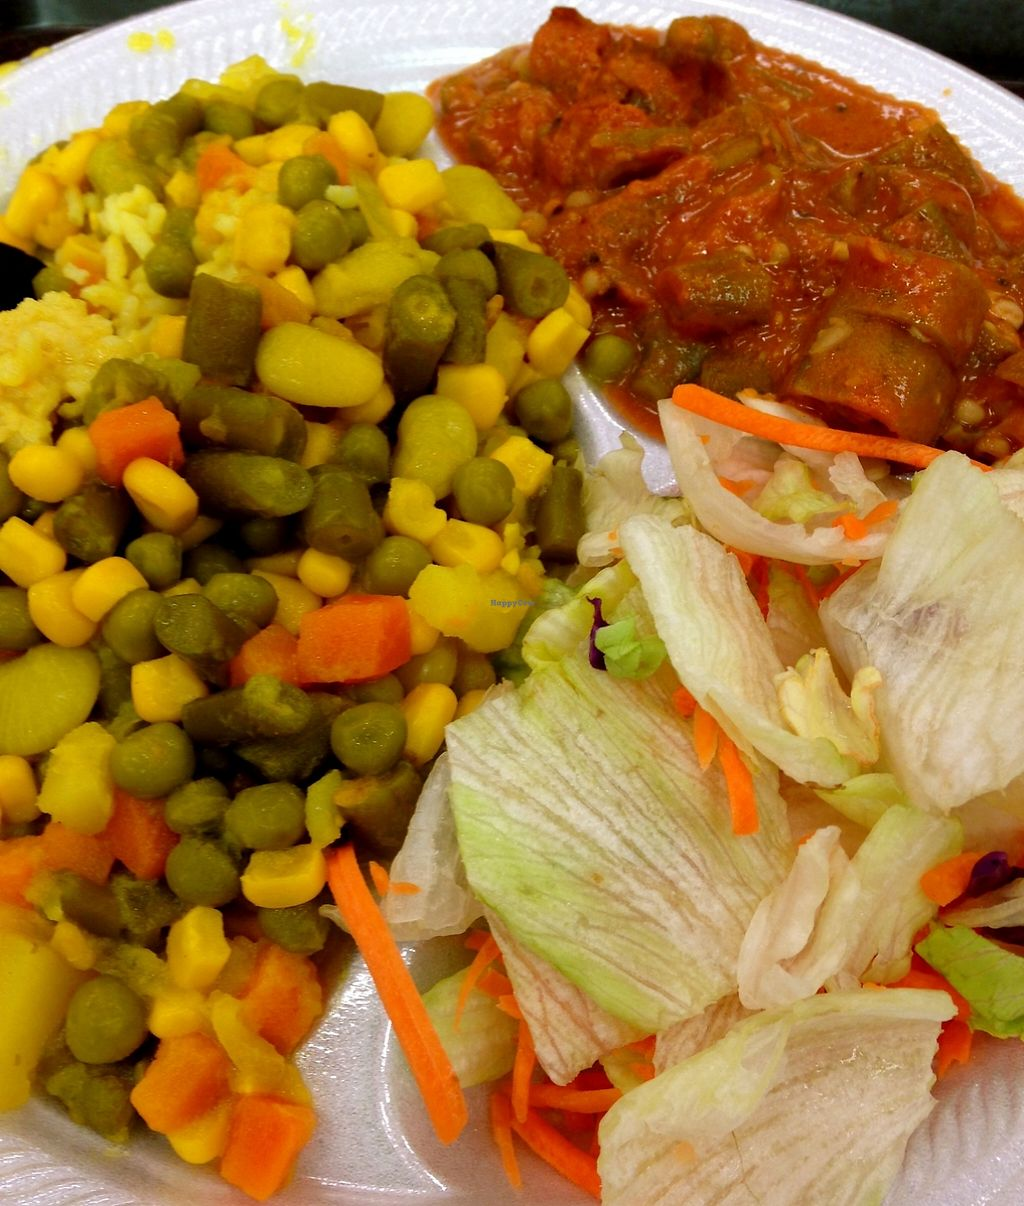 """Photo of India Cafe Curry Express NEX - Kiosk  by <a href=""""/members/profile/myra975"""">myra975</a> <br/>Okra Curry with Side Salad, Rice and Vegetable Sambar  <br/> September 10, 2015  - <a href='/contact/abuse/image/33477/199364'>Report</a>"""